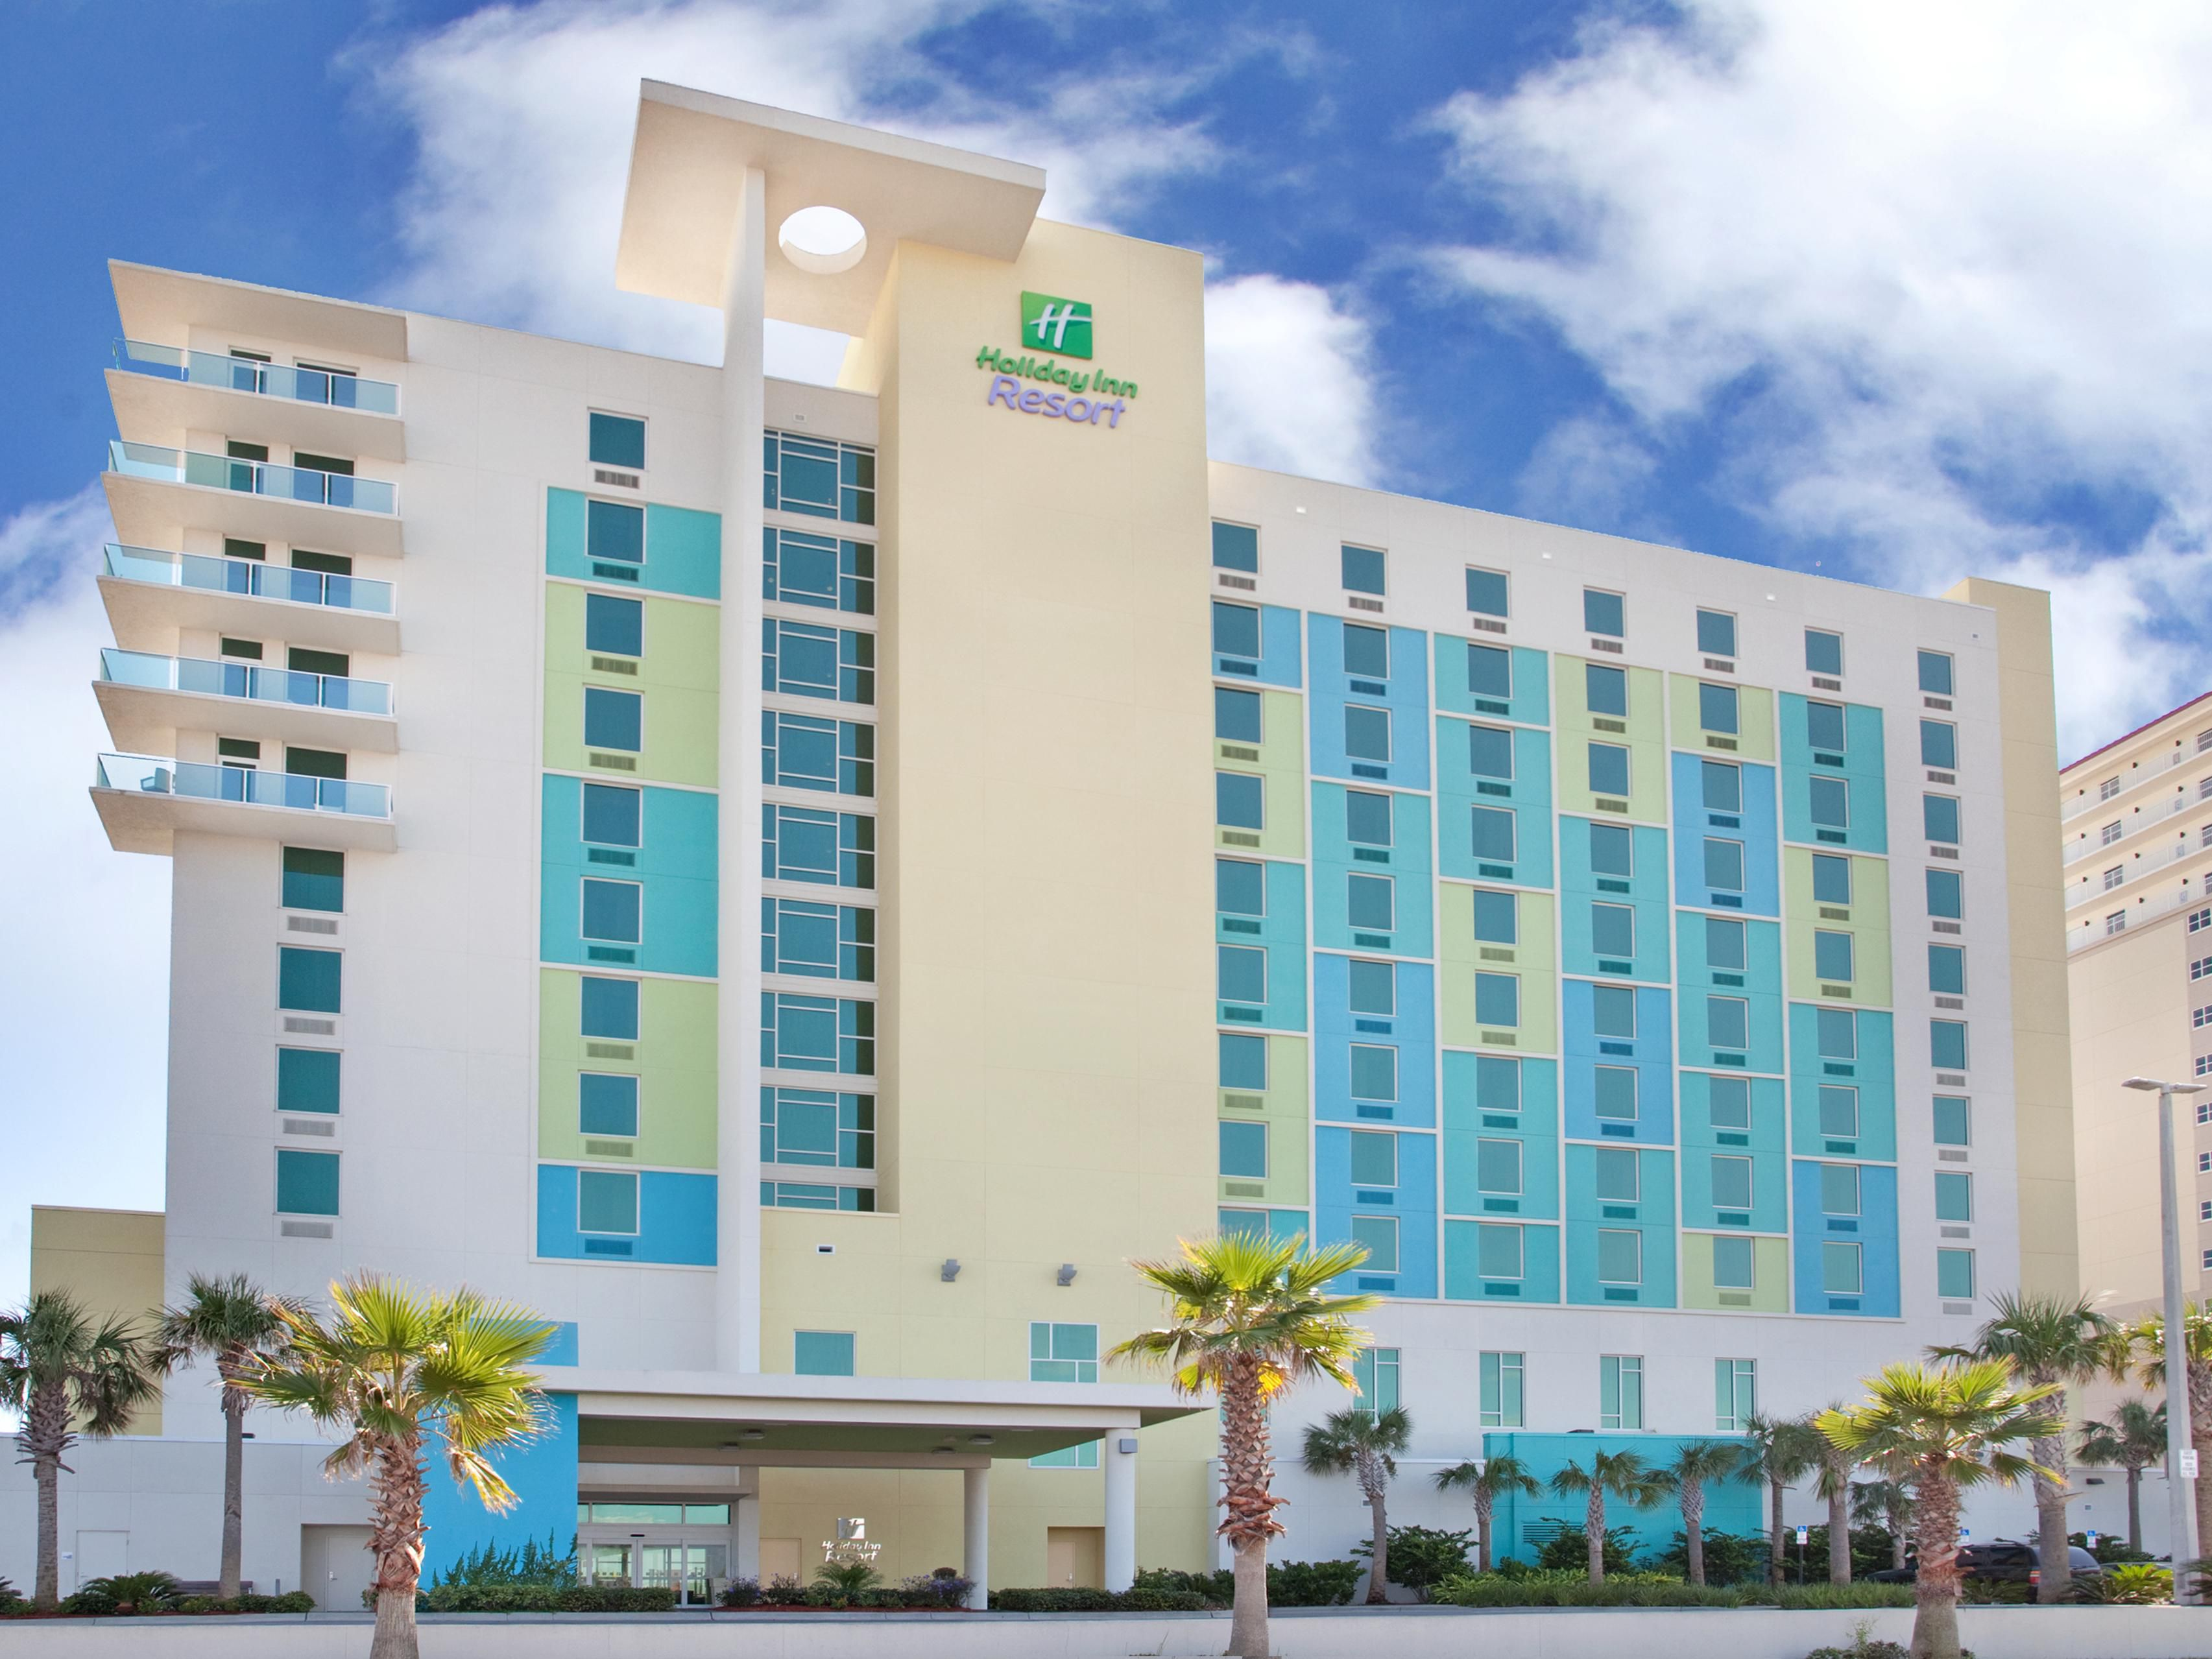 Holiday Inn Resort Pensacola Beach is located directly on the Gulf